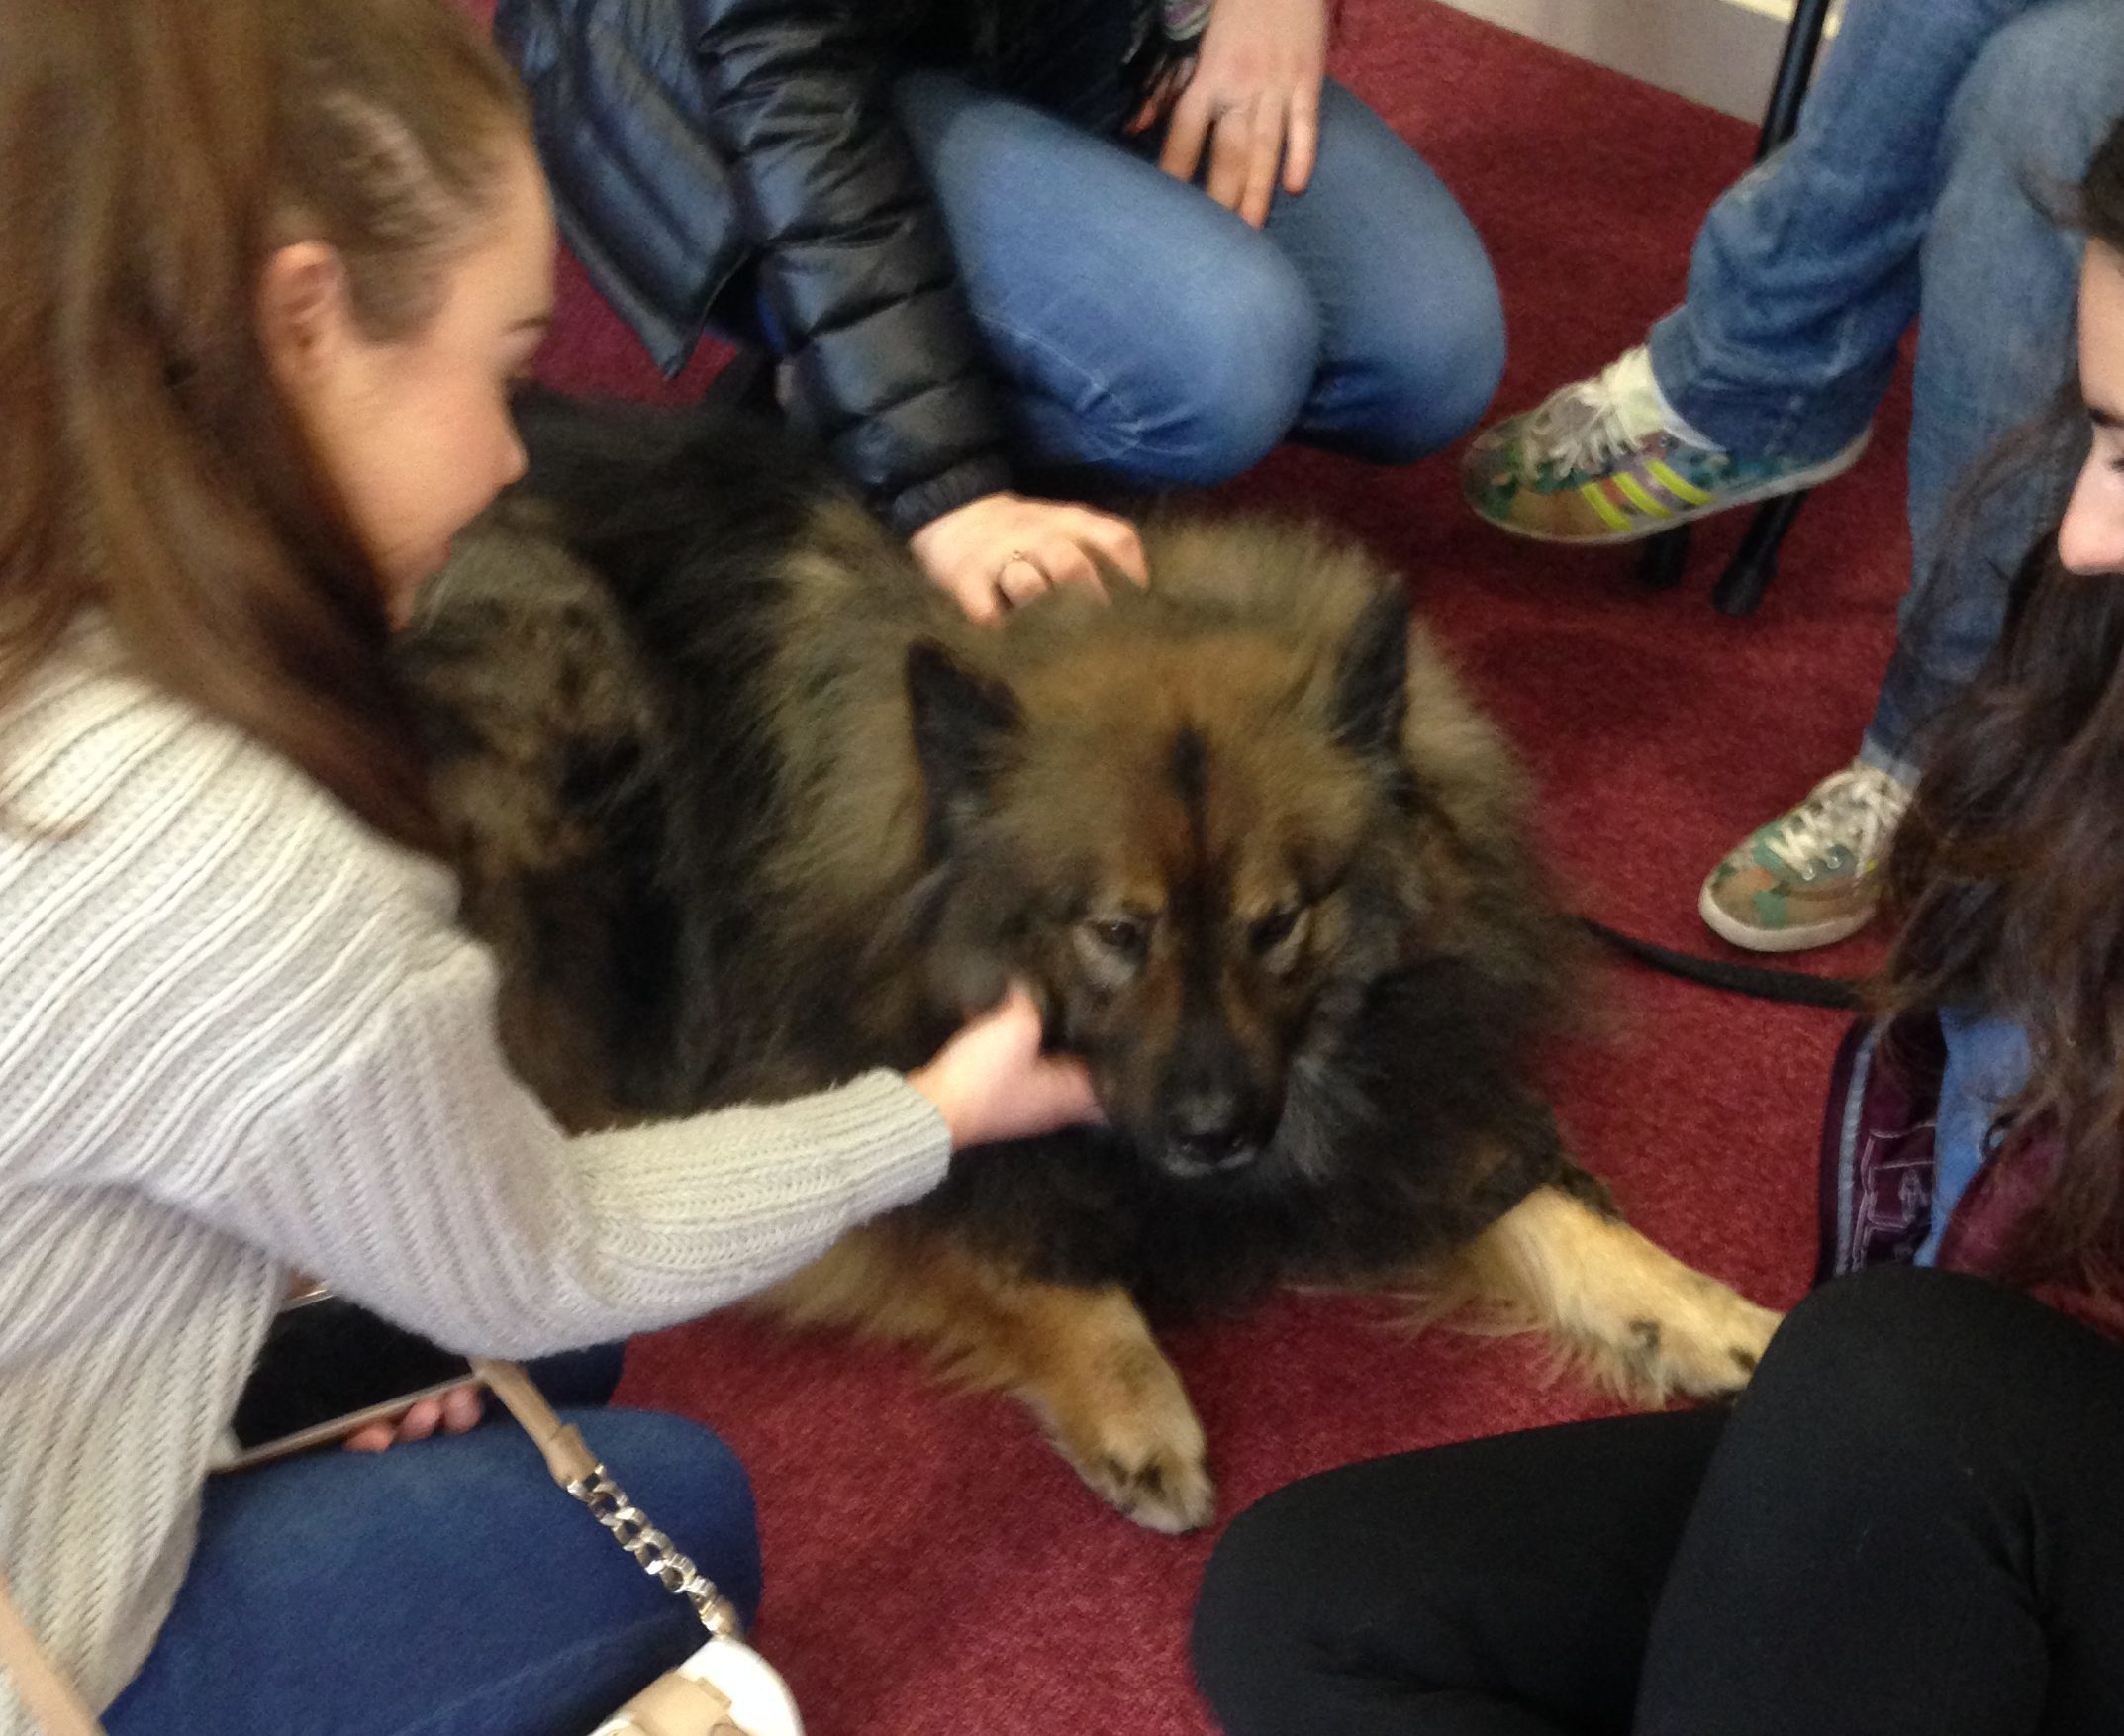 Lupo the Eurasier got a lot of attention from the students